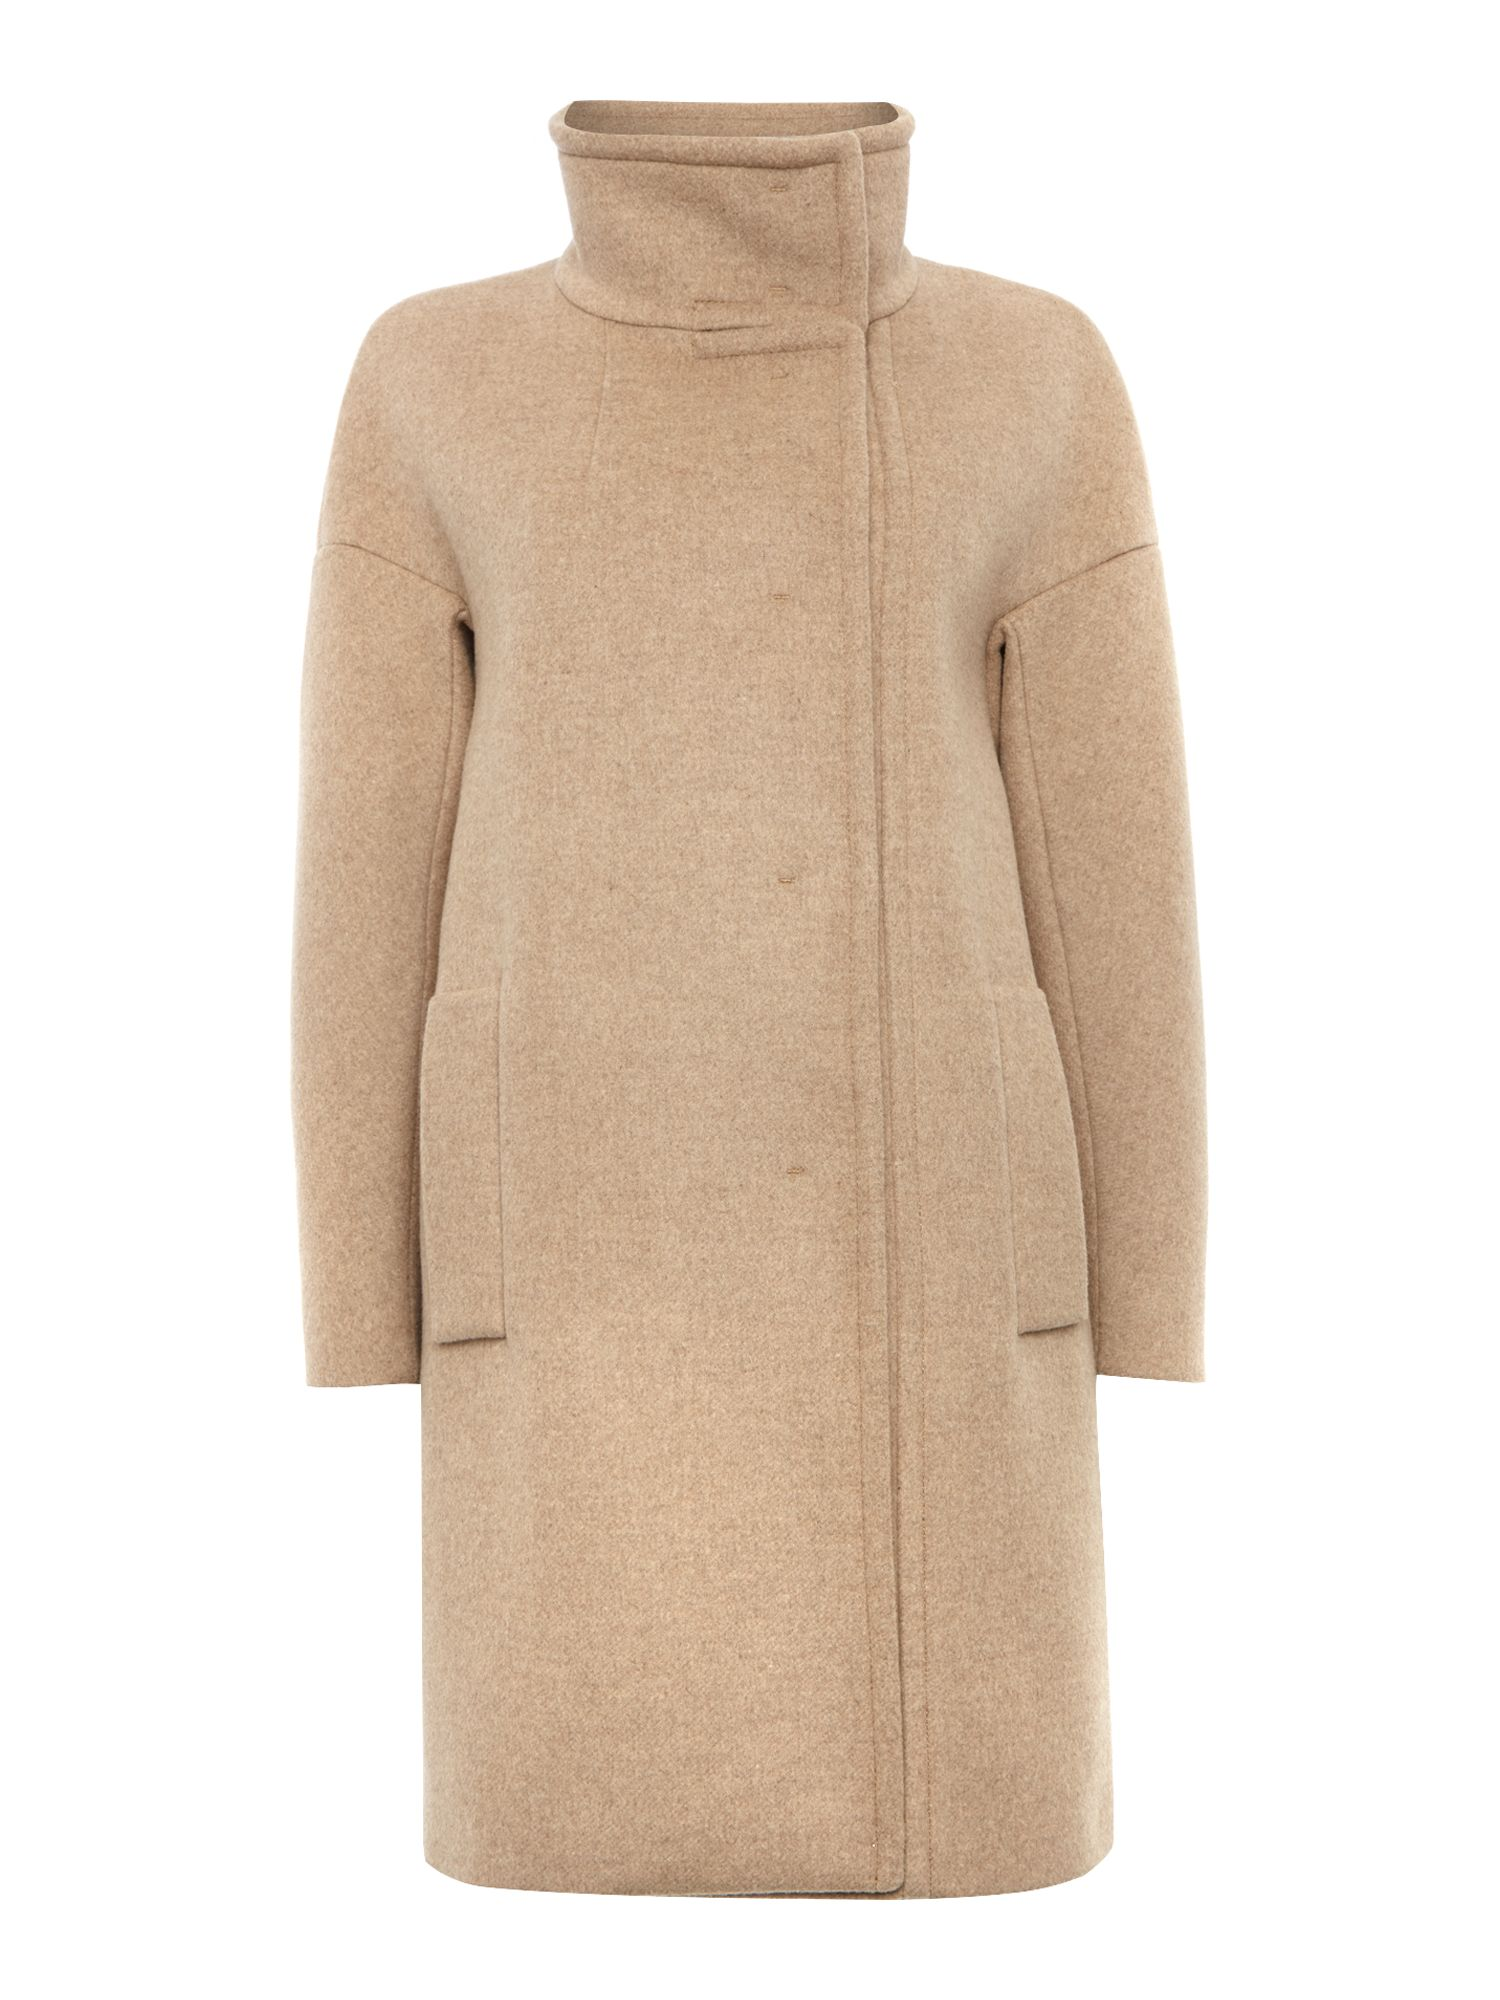 Ragni melton wool funnel neck coat